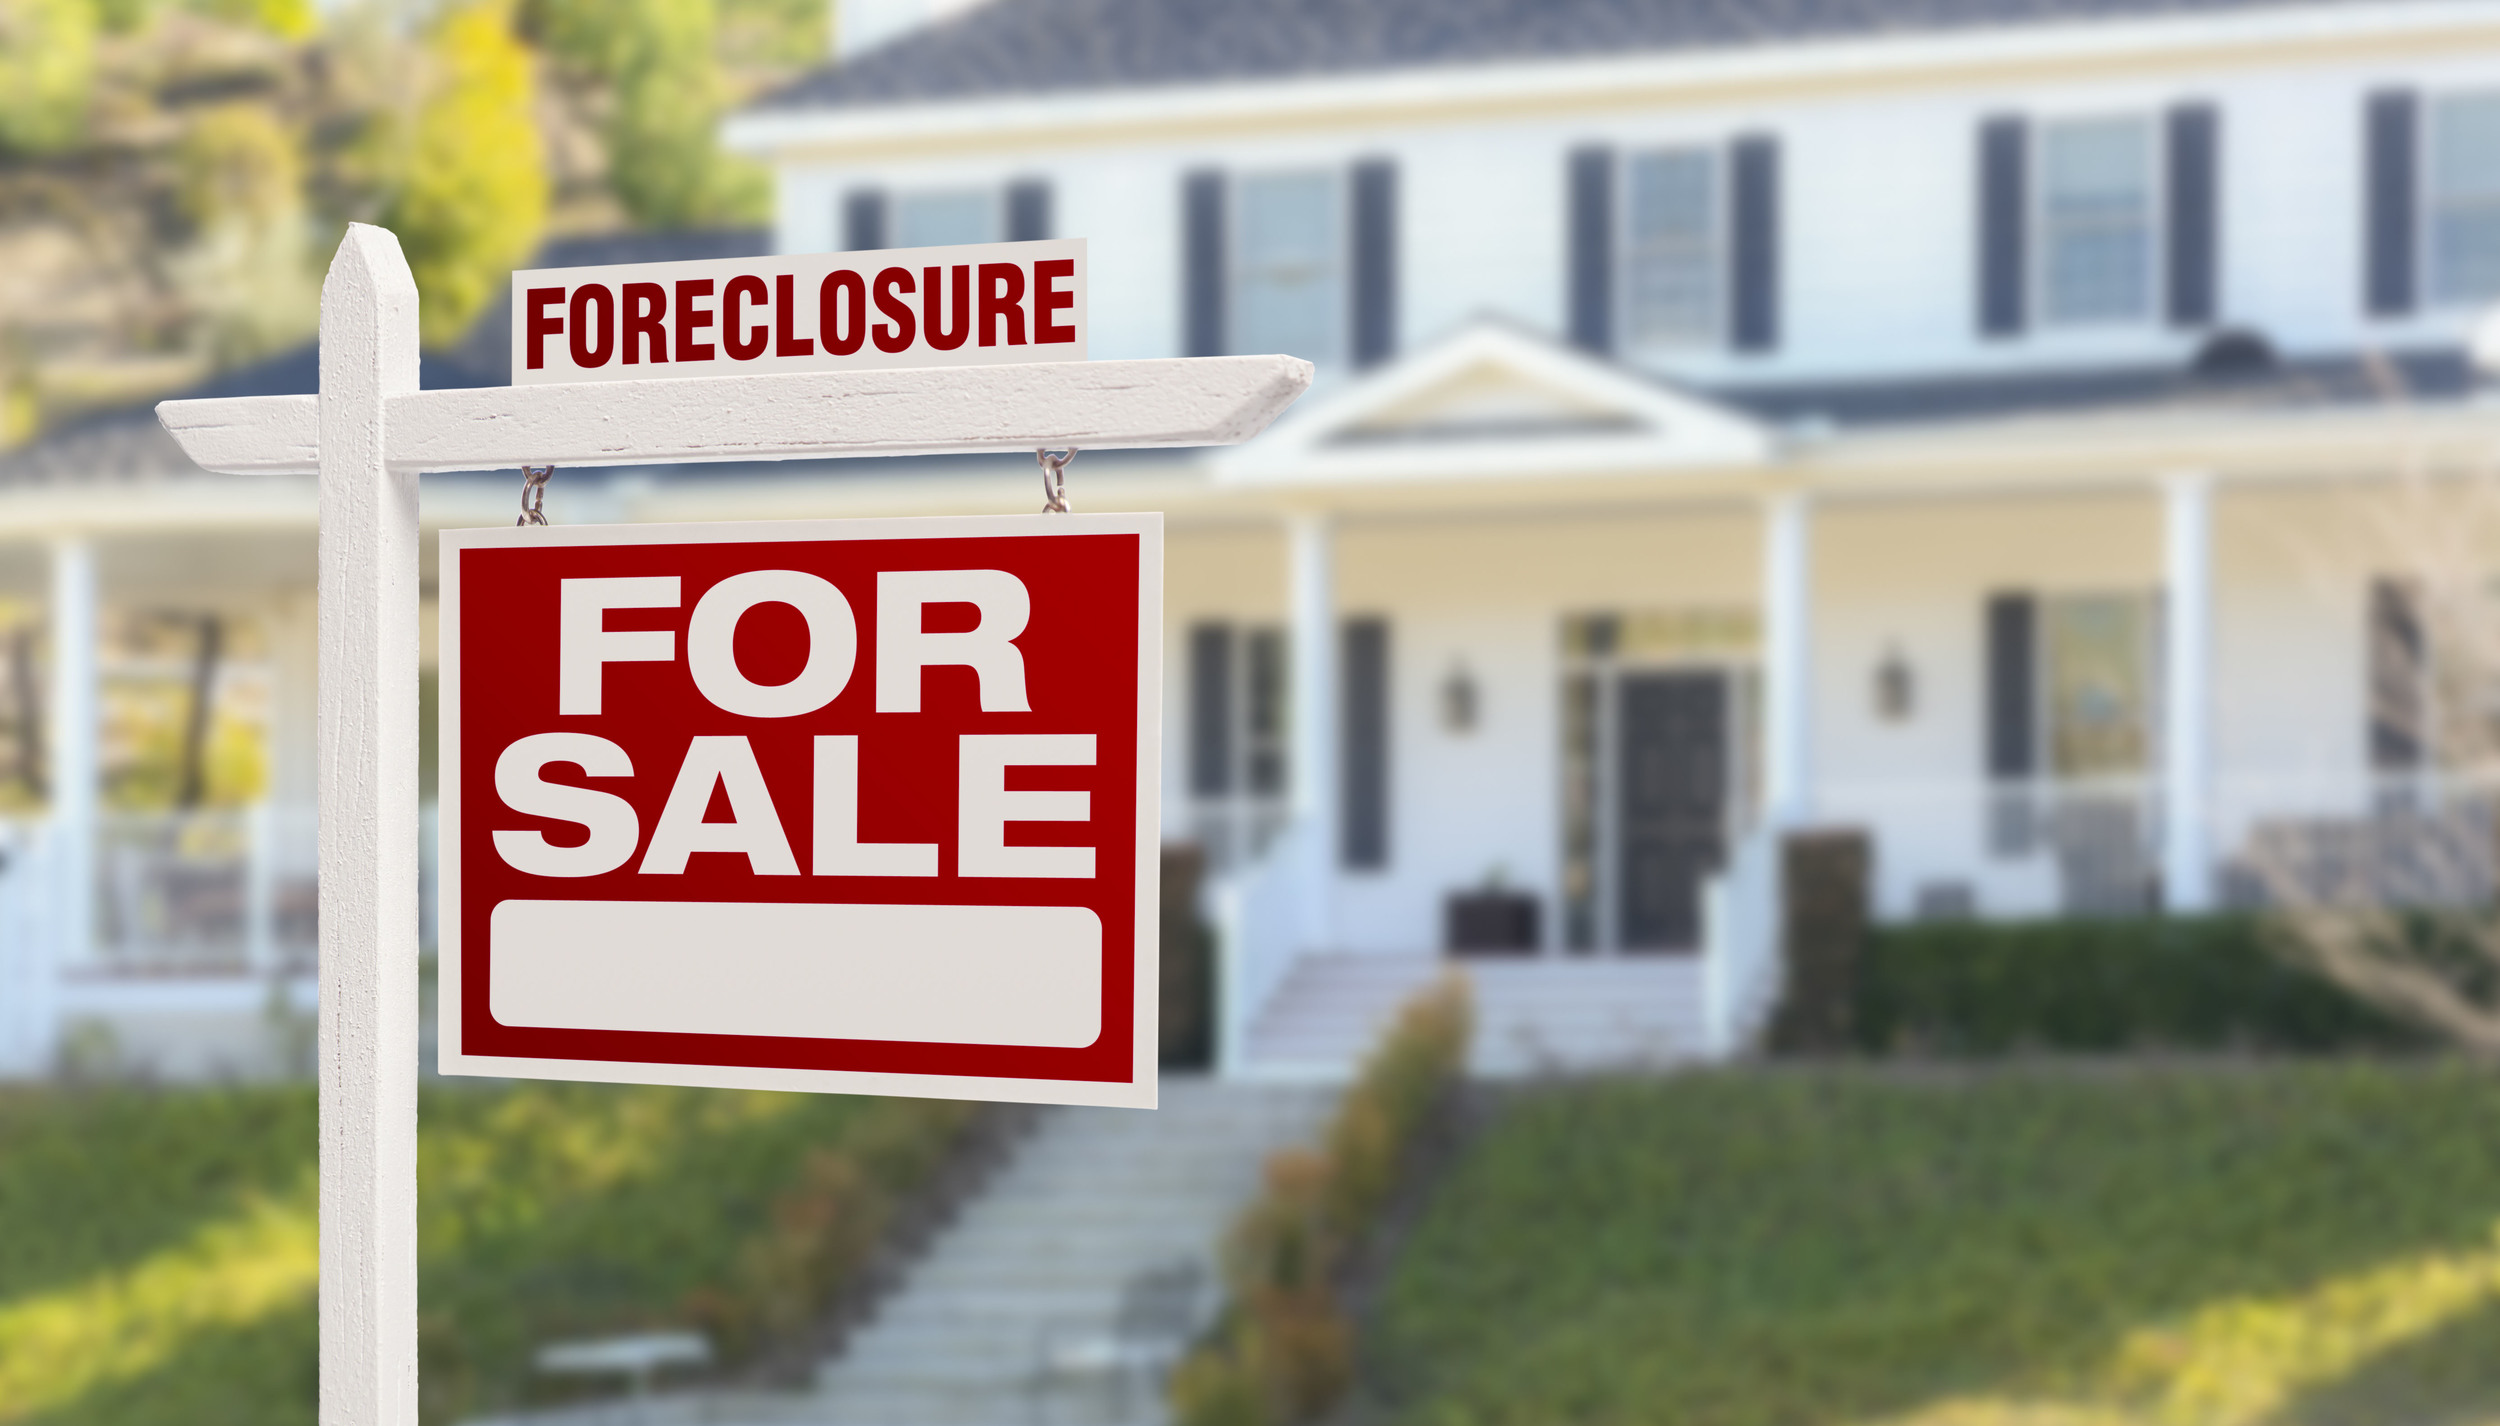 FORECLOSURE COUNSELING If you are a homeowner in danger of losing your home, CSET may be able to help. Our counselors can help you understand your options and provide information that may help save your home. Services are free and our counselors are bilingual.